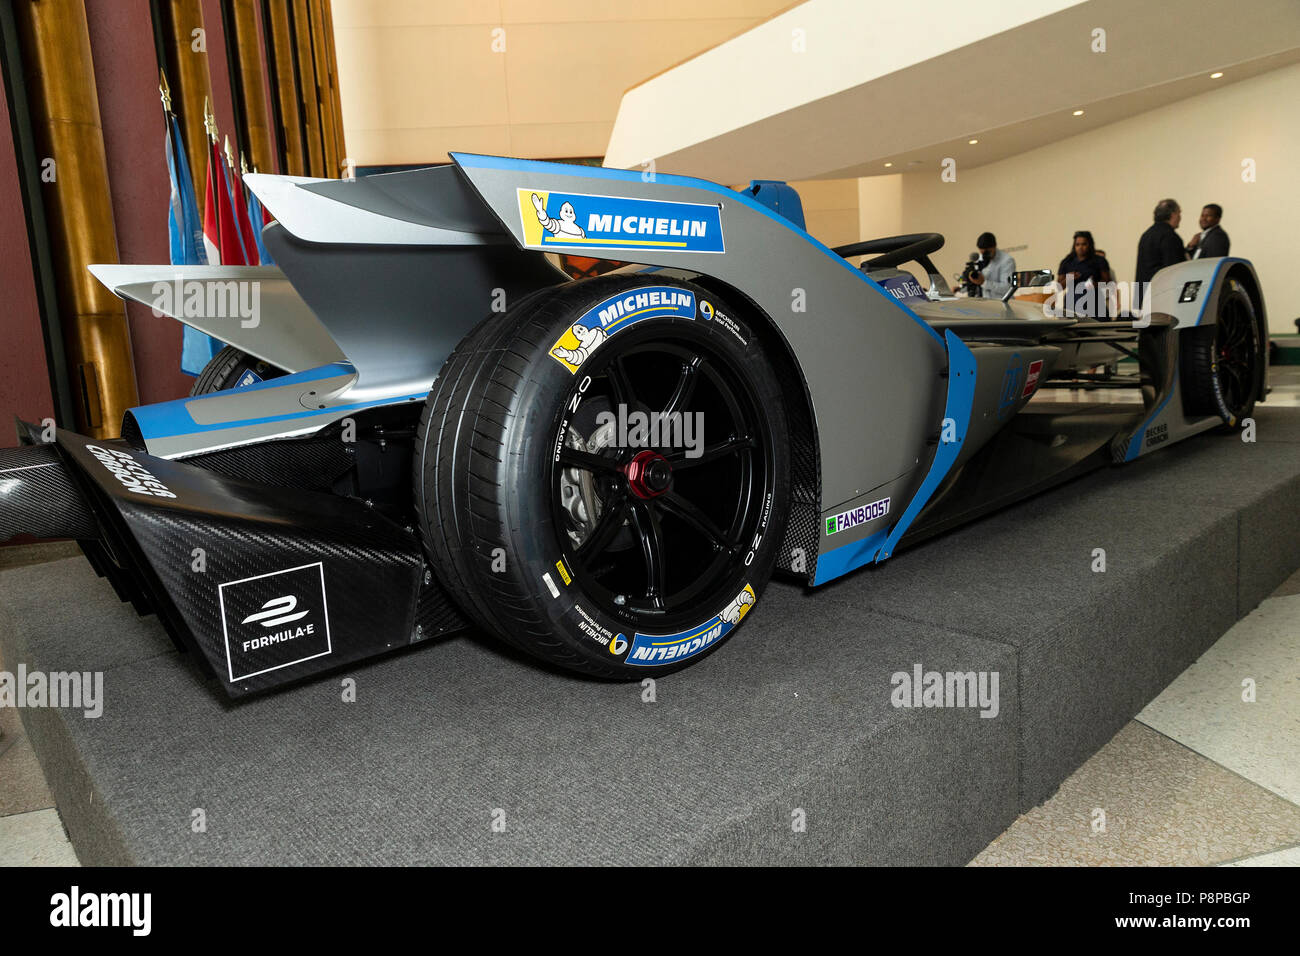 new york, united states. 12th july, 2018. formula-e race car on